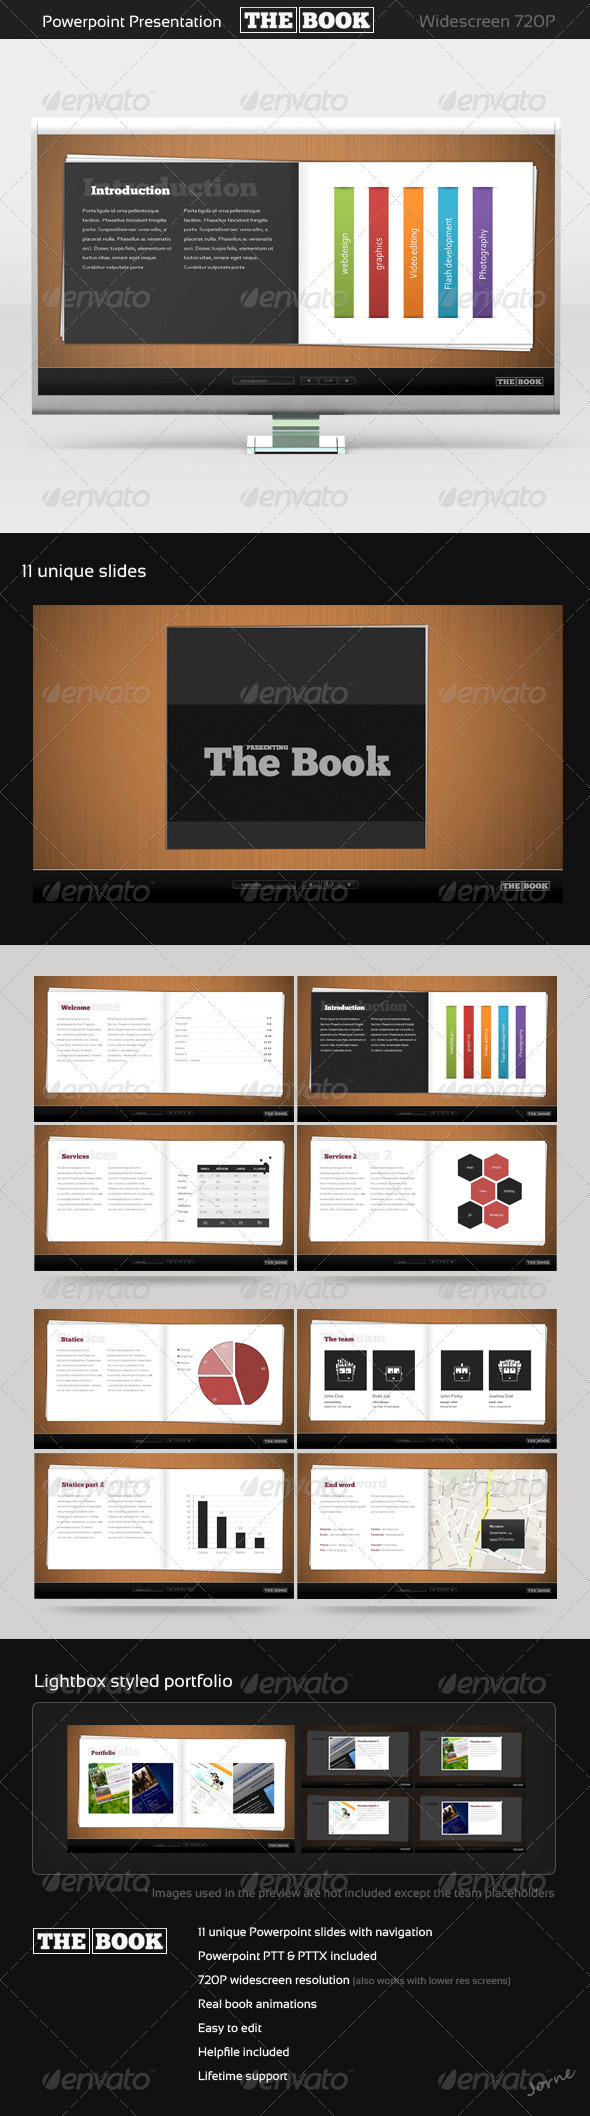 The Book PowerPoint template - Powerpoint Templates Presentation Templates